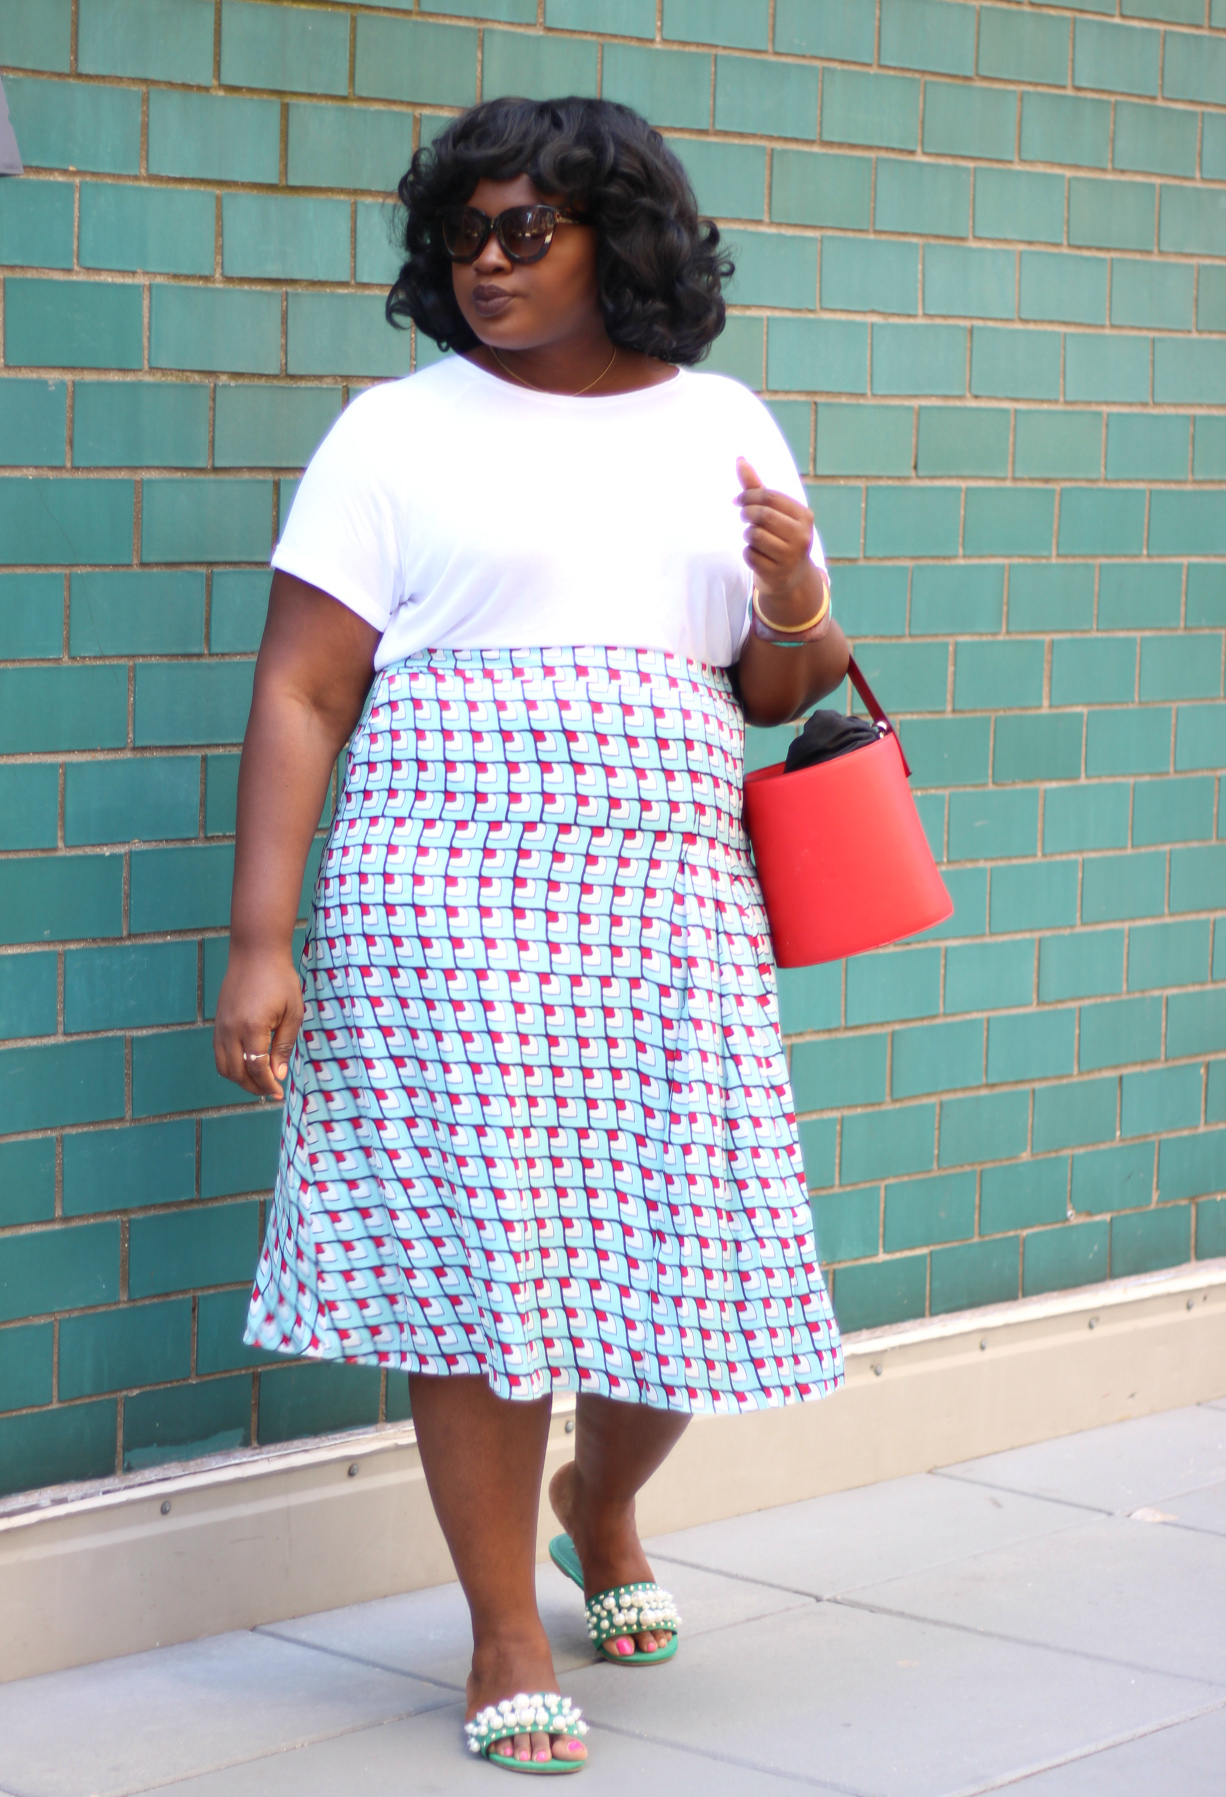 Pleat Midi Skirt HALOGEN plus outfit